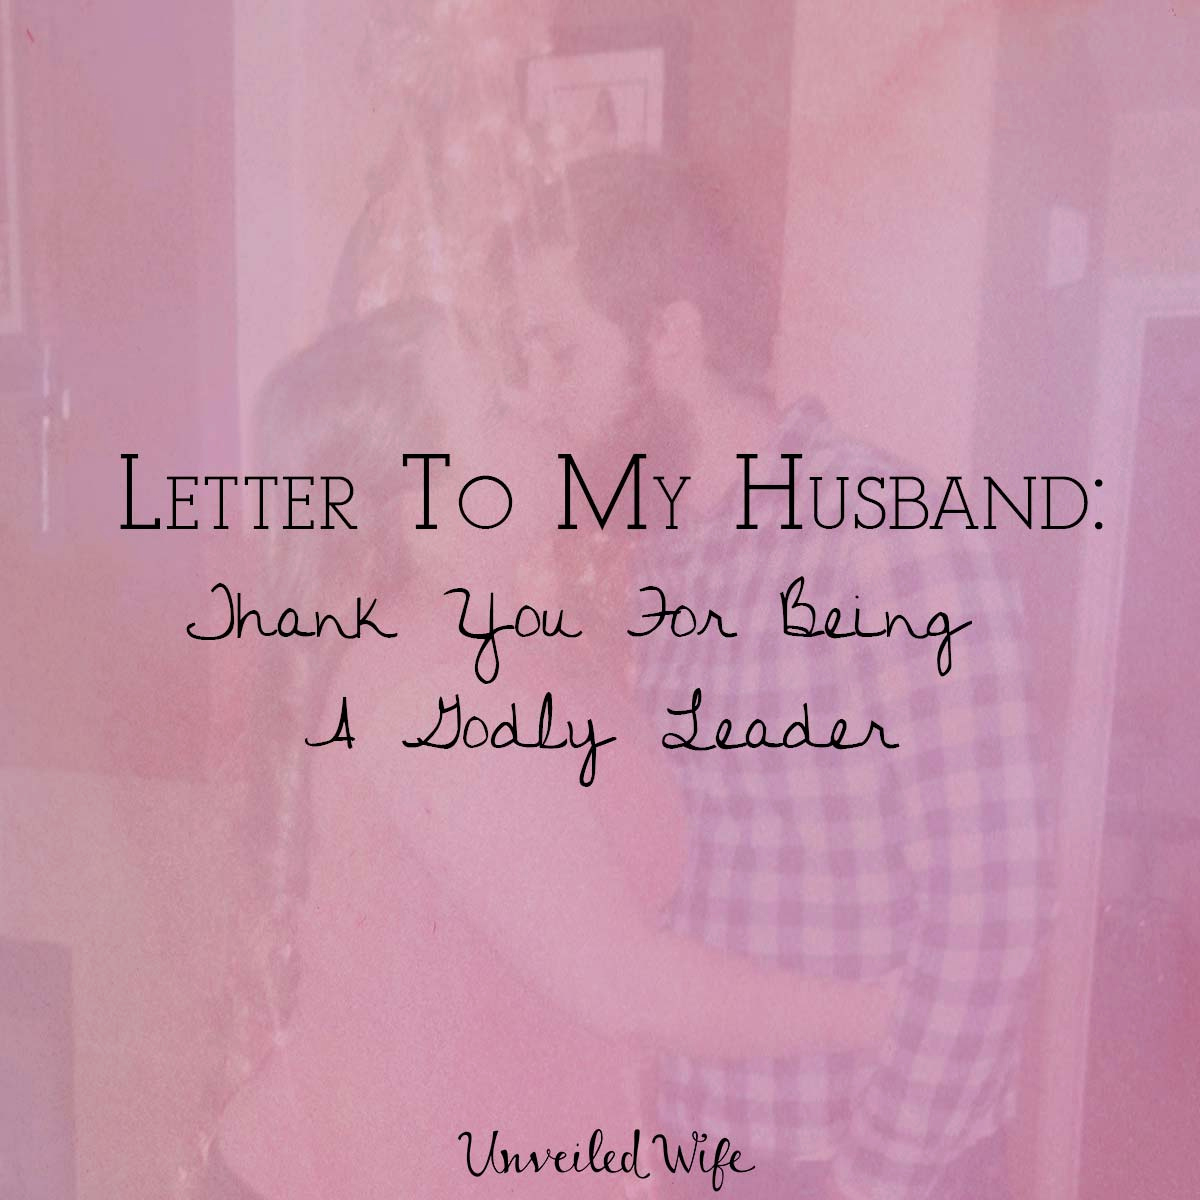 Letter to My Husband Awesome Letter to My Husband Thank You for Being A Godly Leader